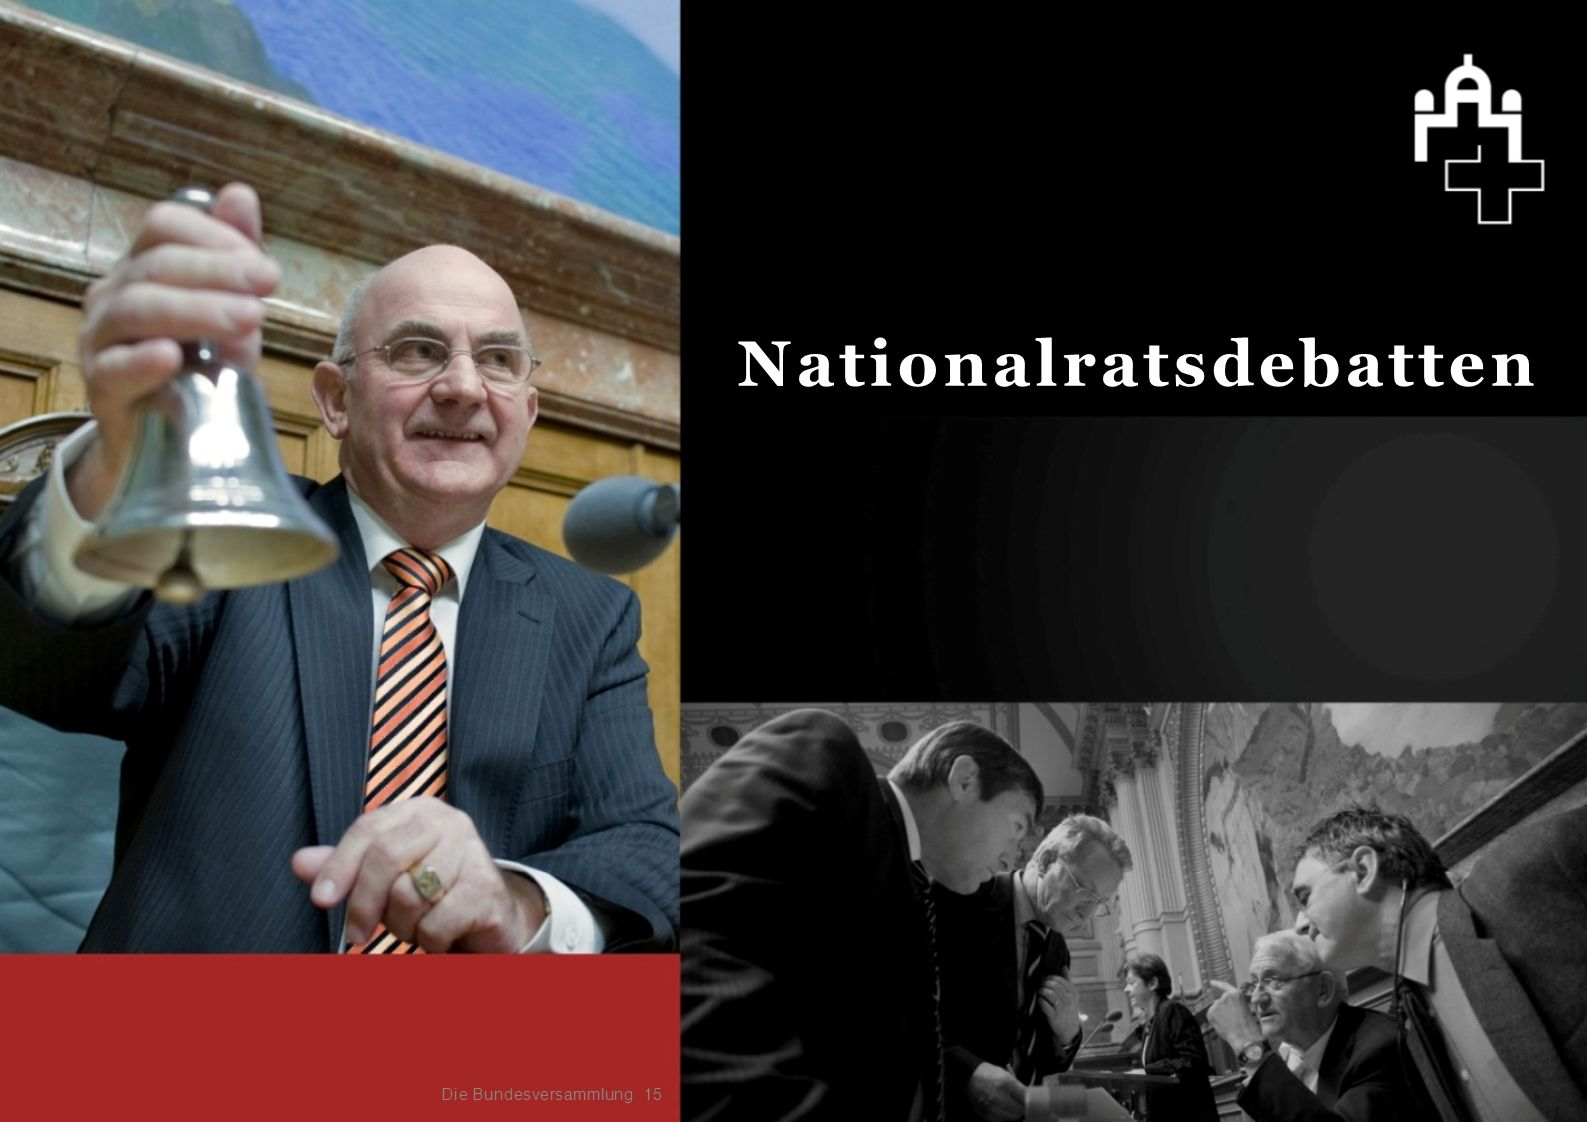 Nationalratsdebatten